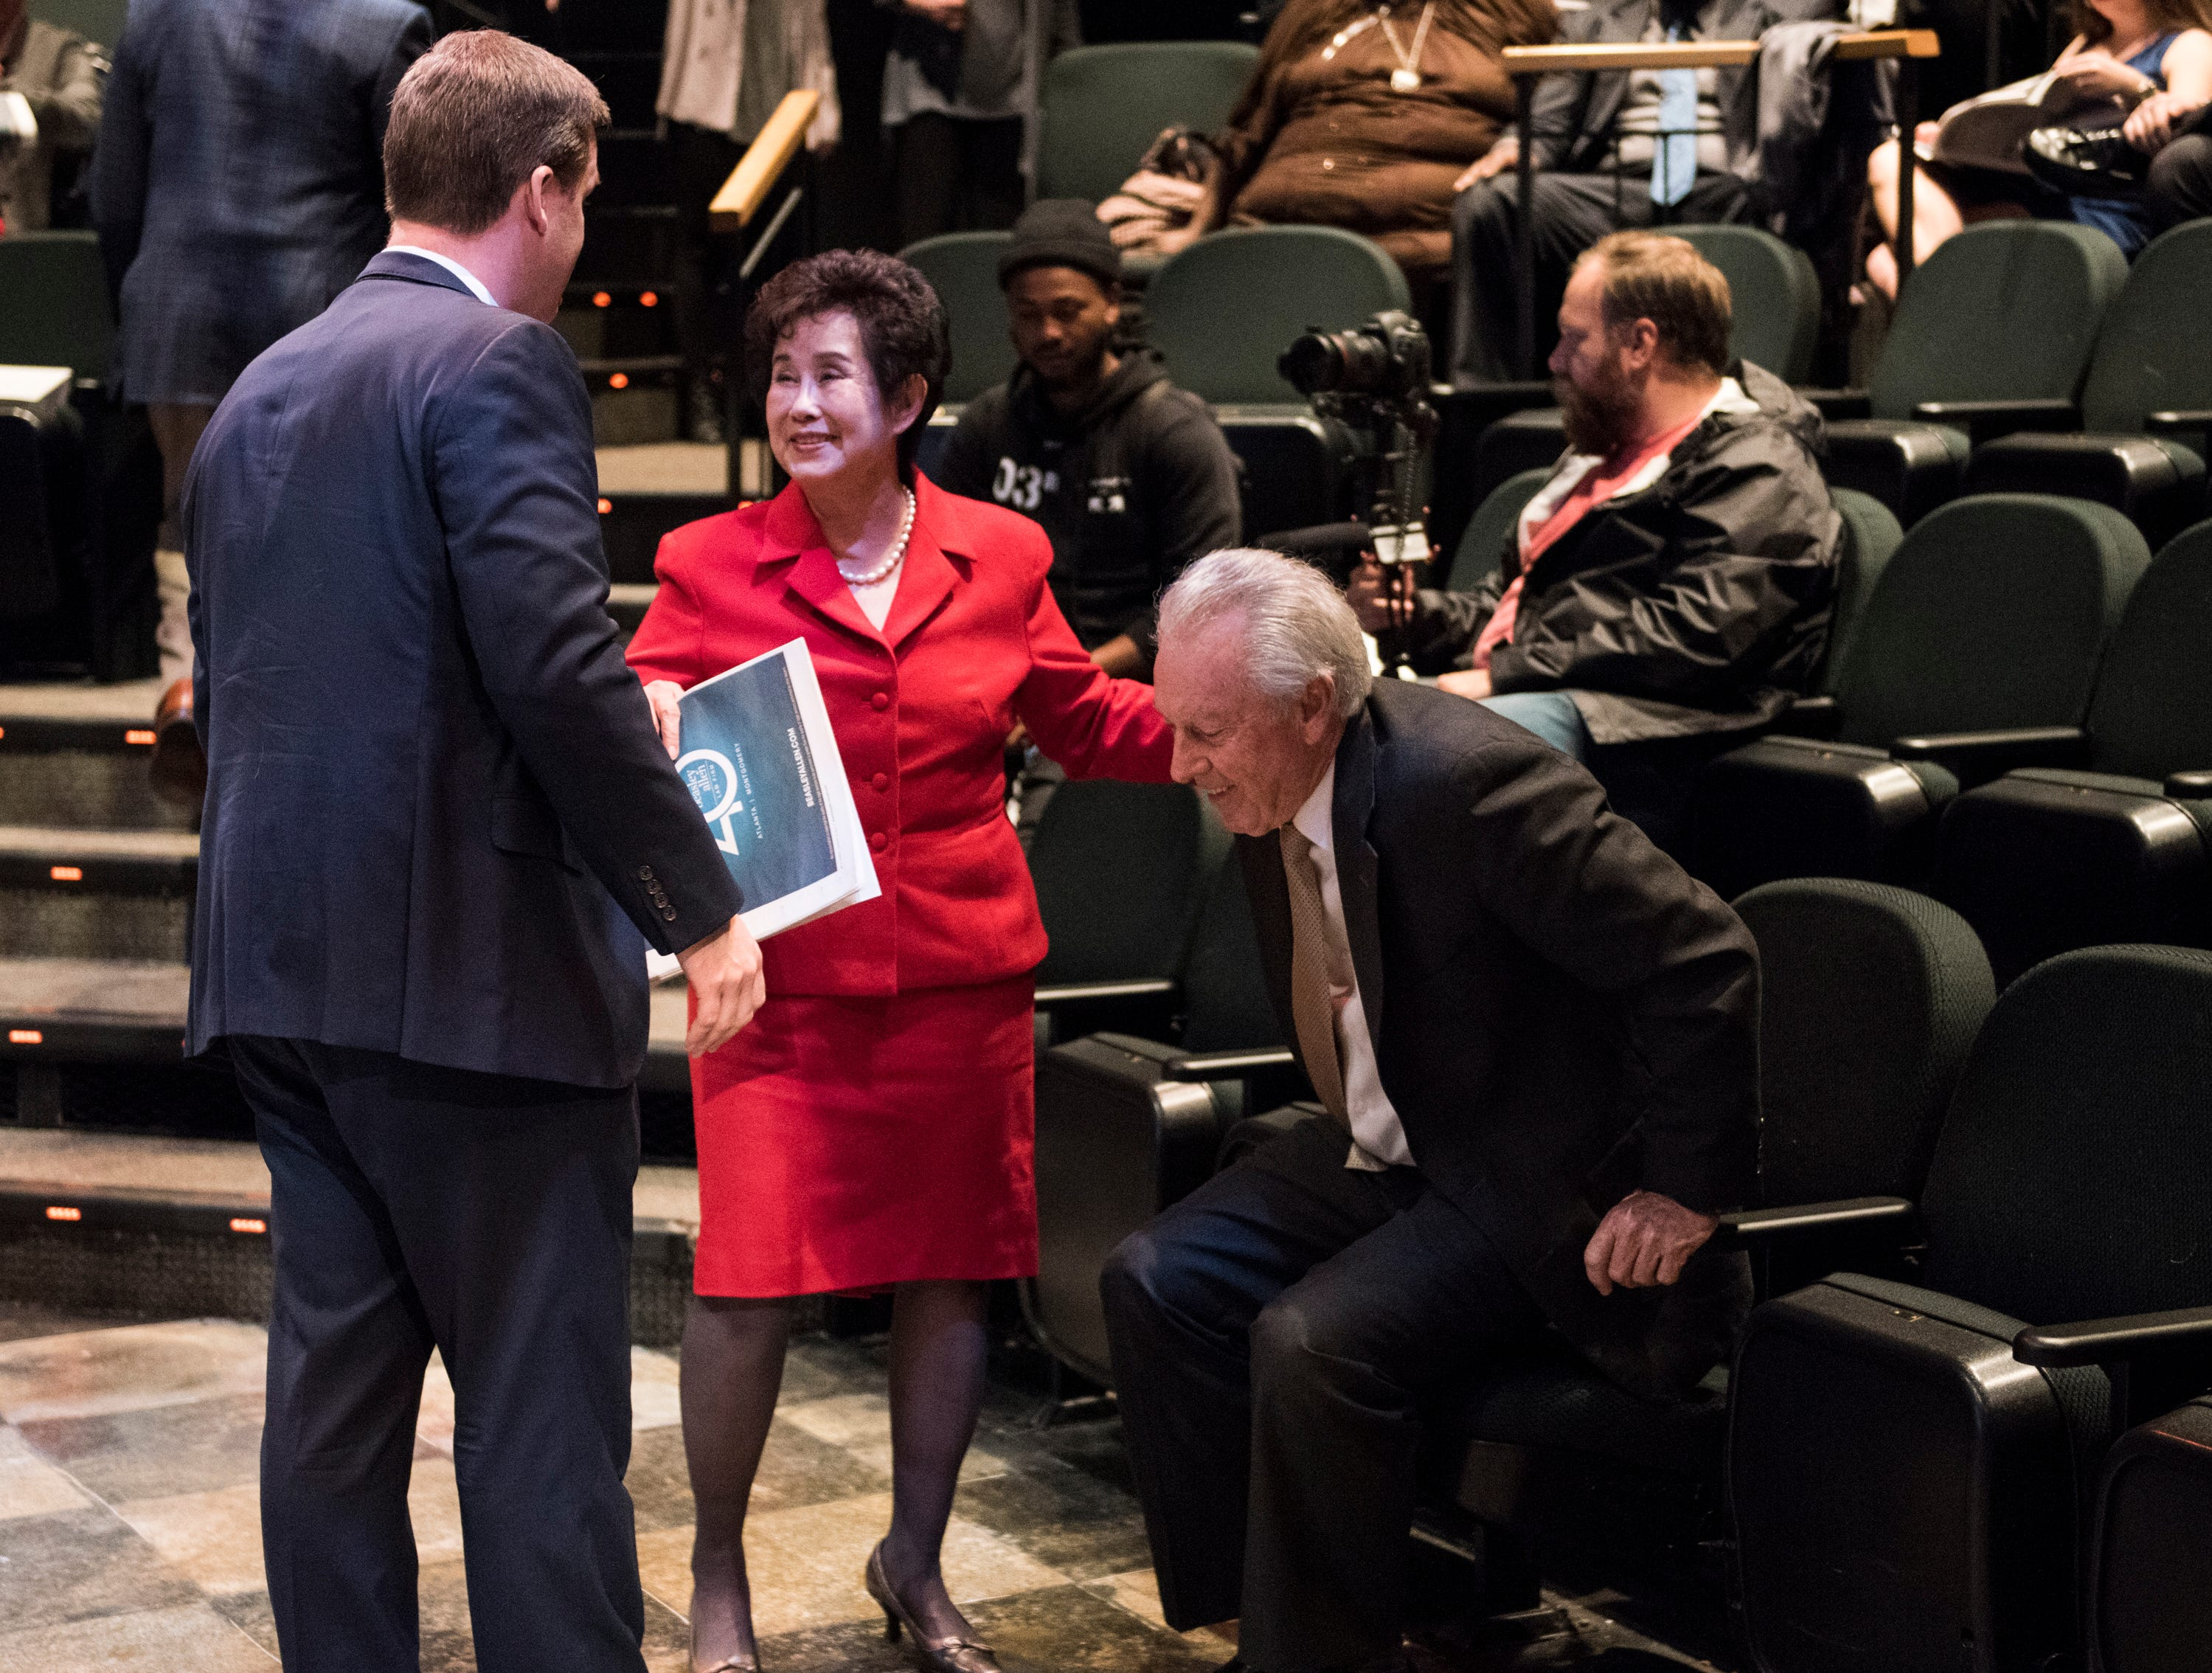 Montgomery Advertiser executive editor Bro Krift greets Community Hero Sieu Tang Wood during the Community Heroes awards ceremony at Alabama Shakespeare Festival in Montgomery, Ala., on Tuesday, Jan. 8, 2019.